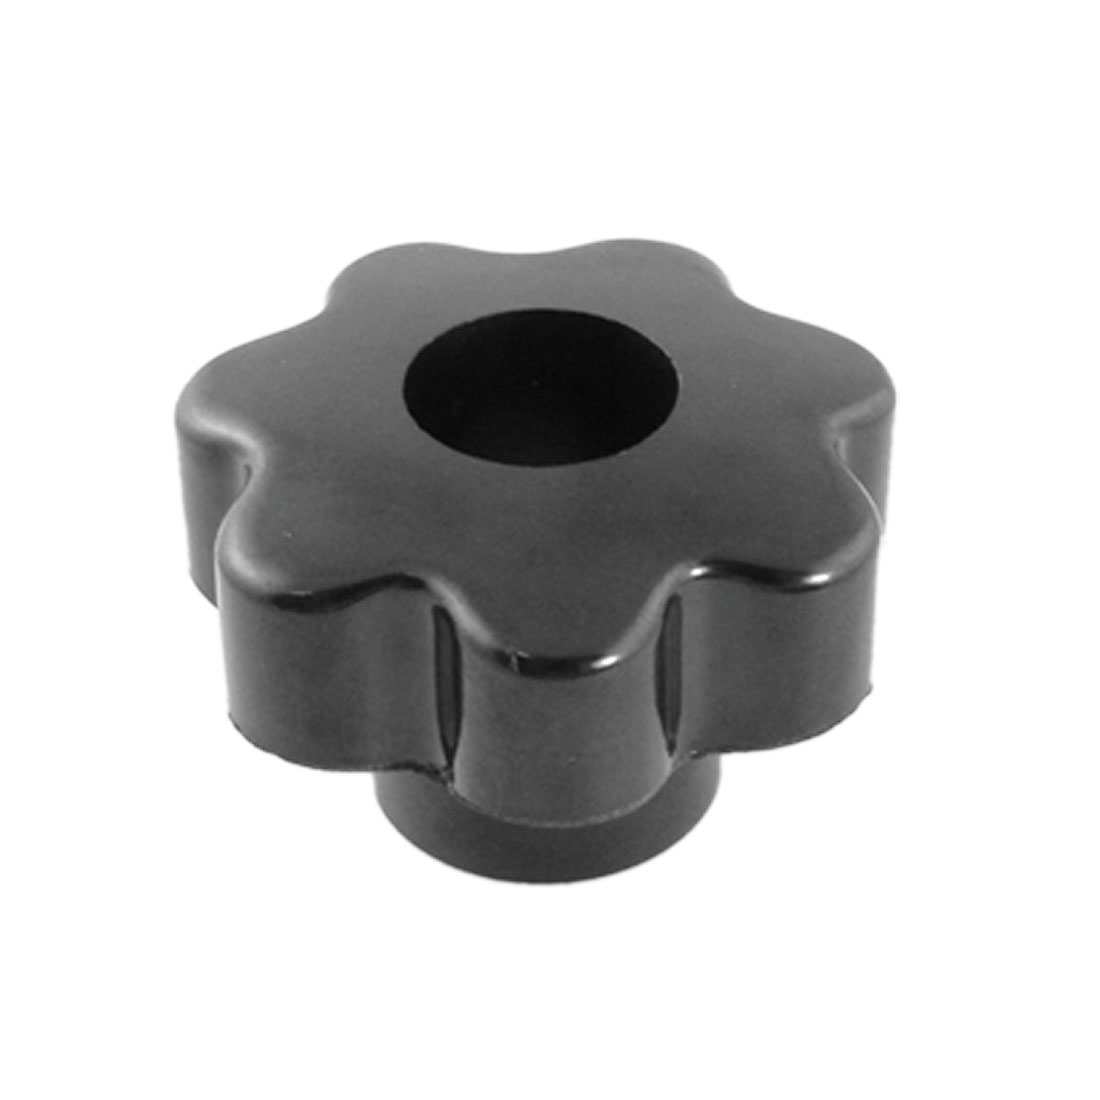 Replacement 10mm Female Thread Dia Clamping Lobe Knob